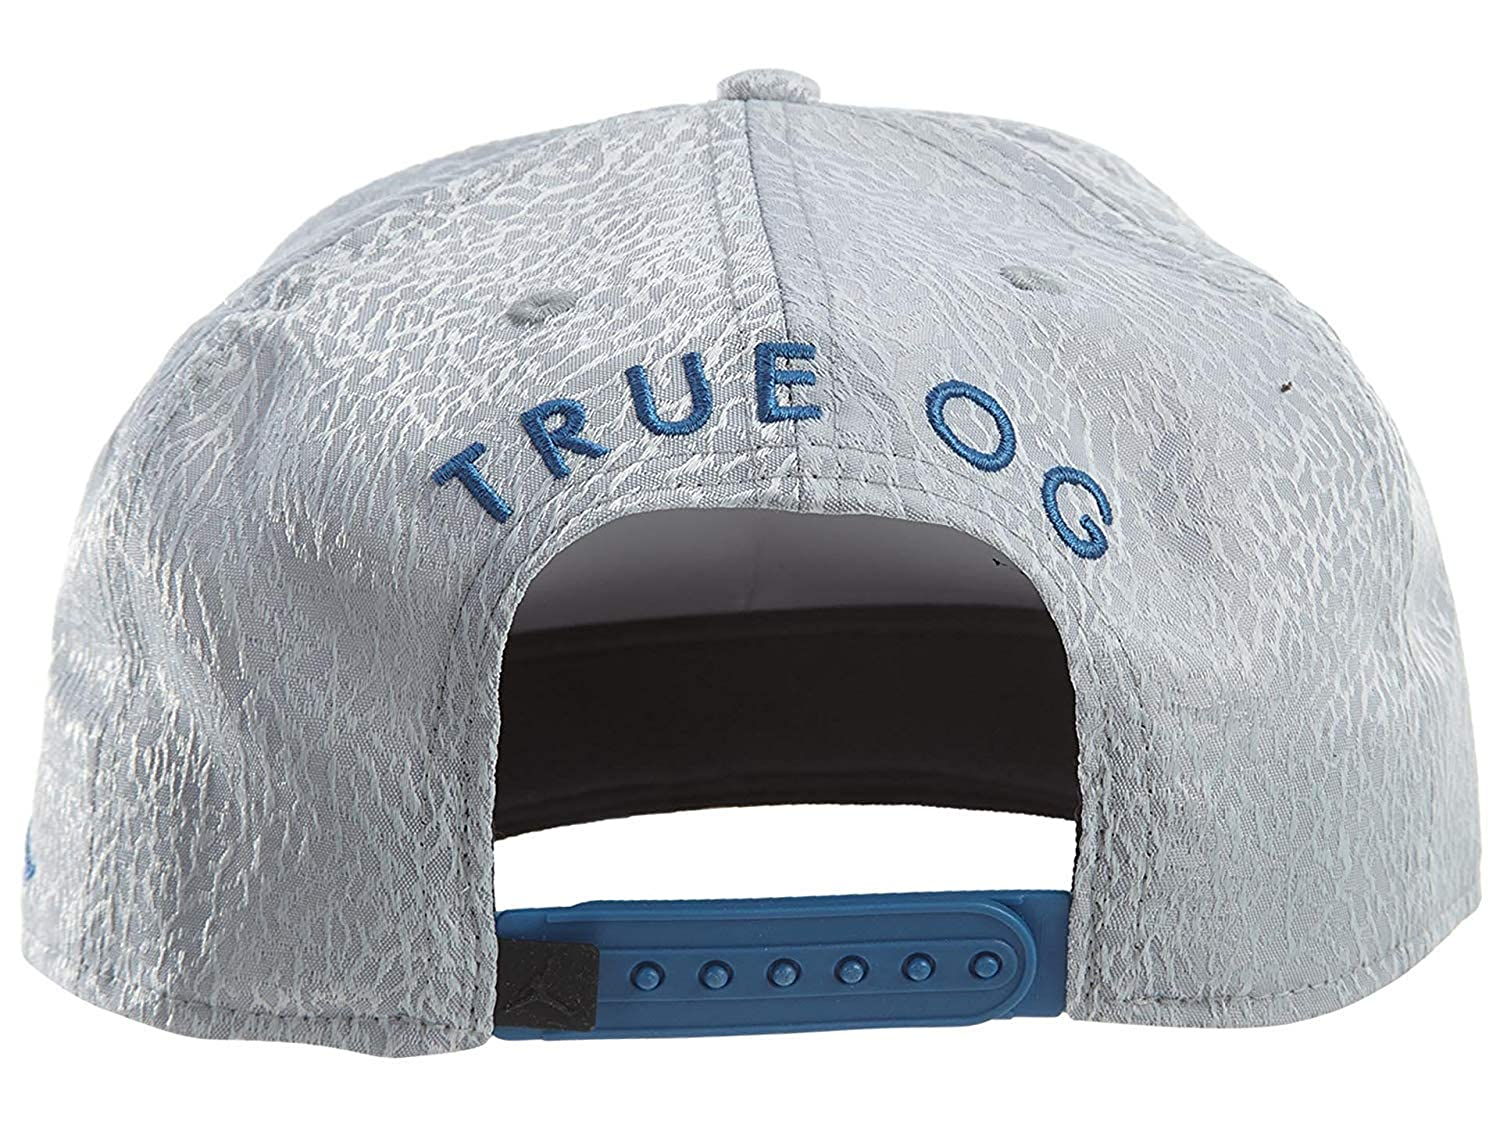 a0a3716766b Amazon.com  Nike Mens Jordan 3 Retro Snapback Hat Cement Grey True Blue  802029-010  Sports   Outdoors